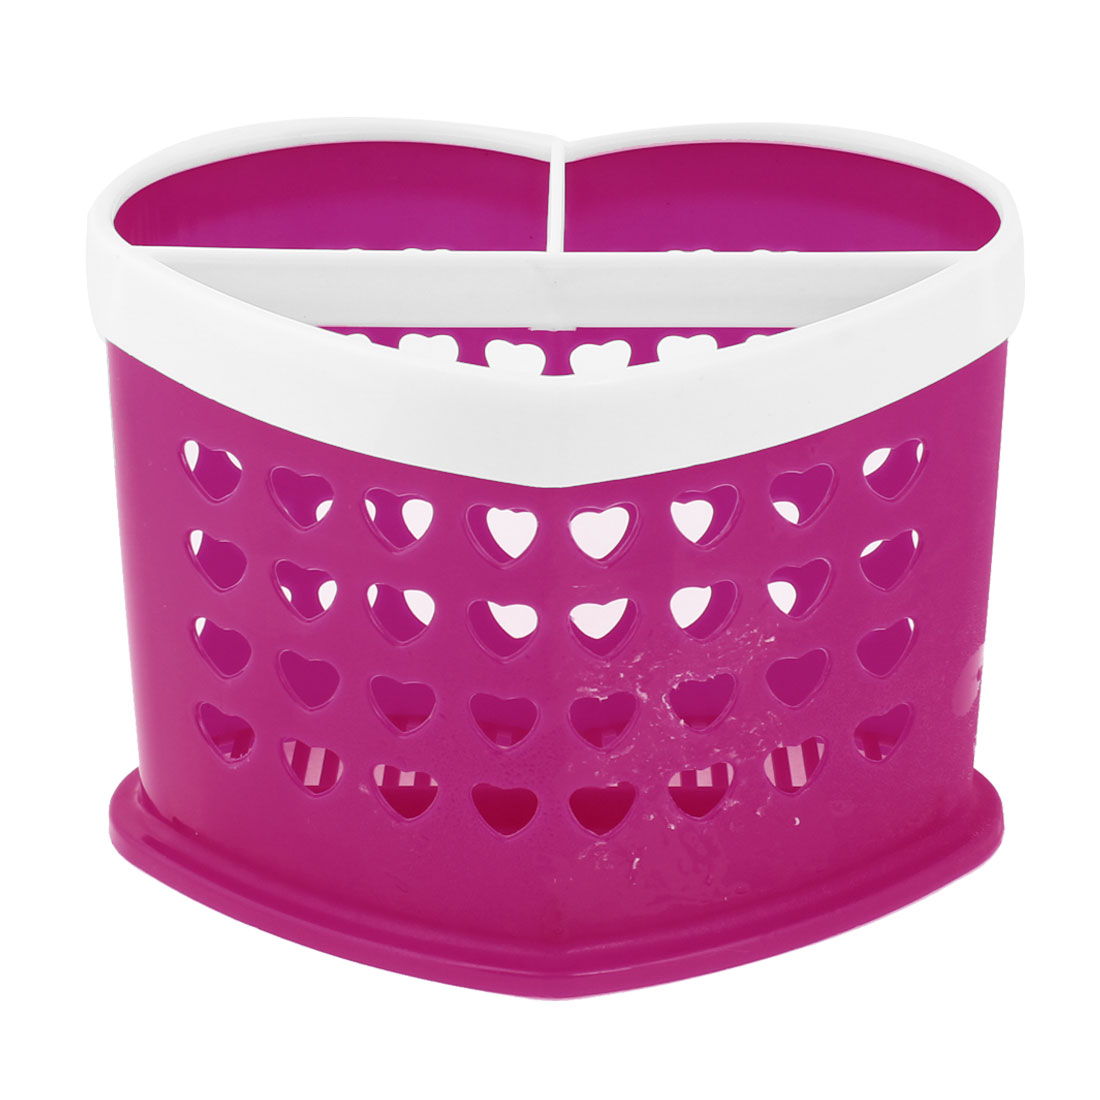 Kitchen Fuchsia White Plastic Heart Shape Chopsticks Spoon Fork Case Container